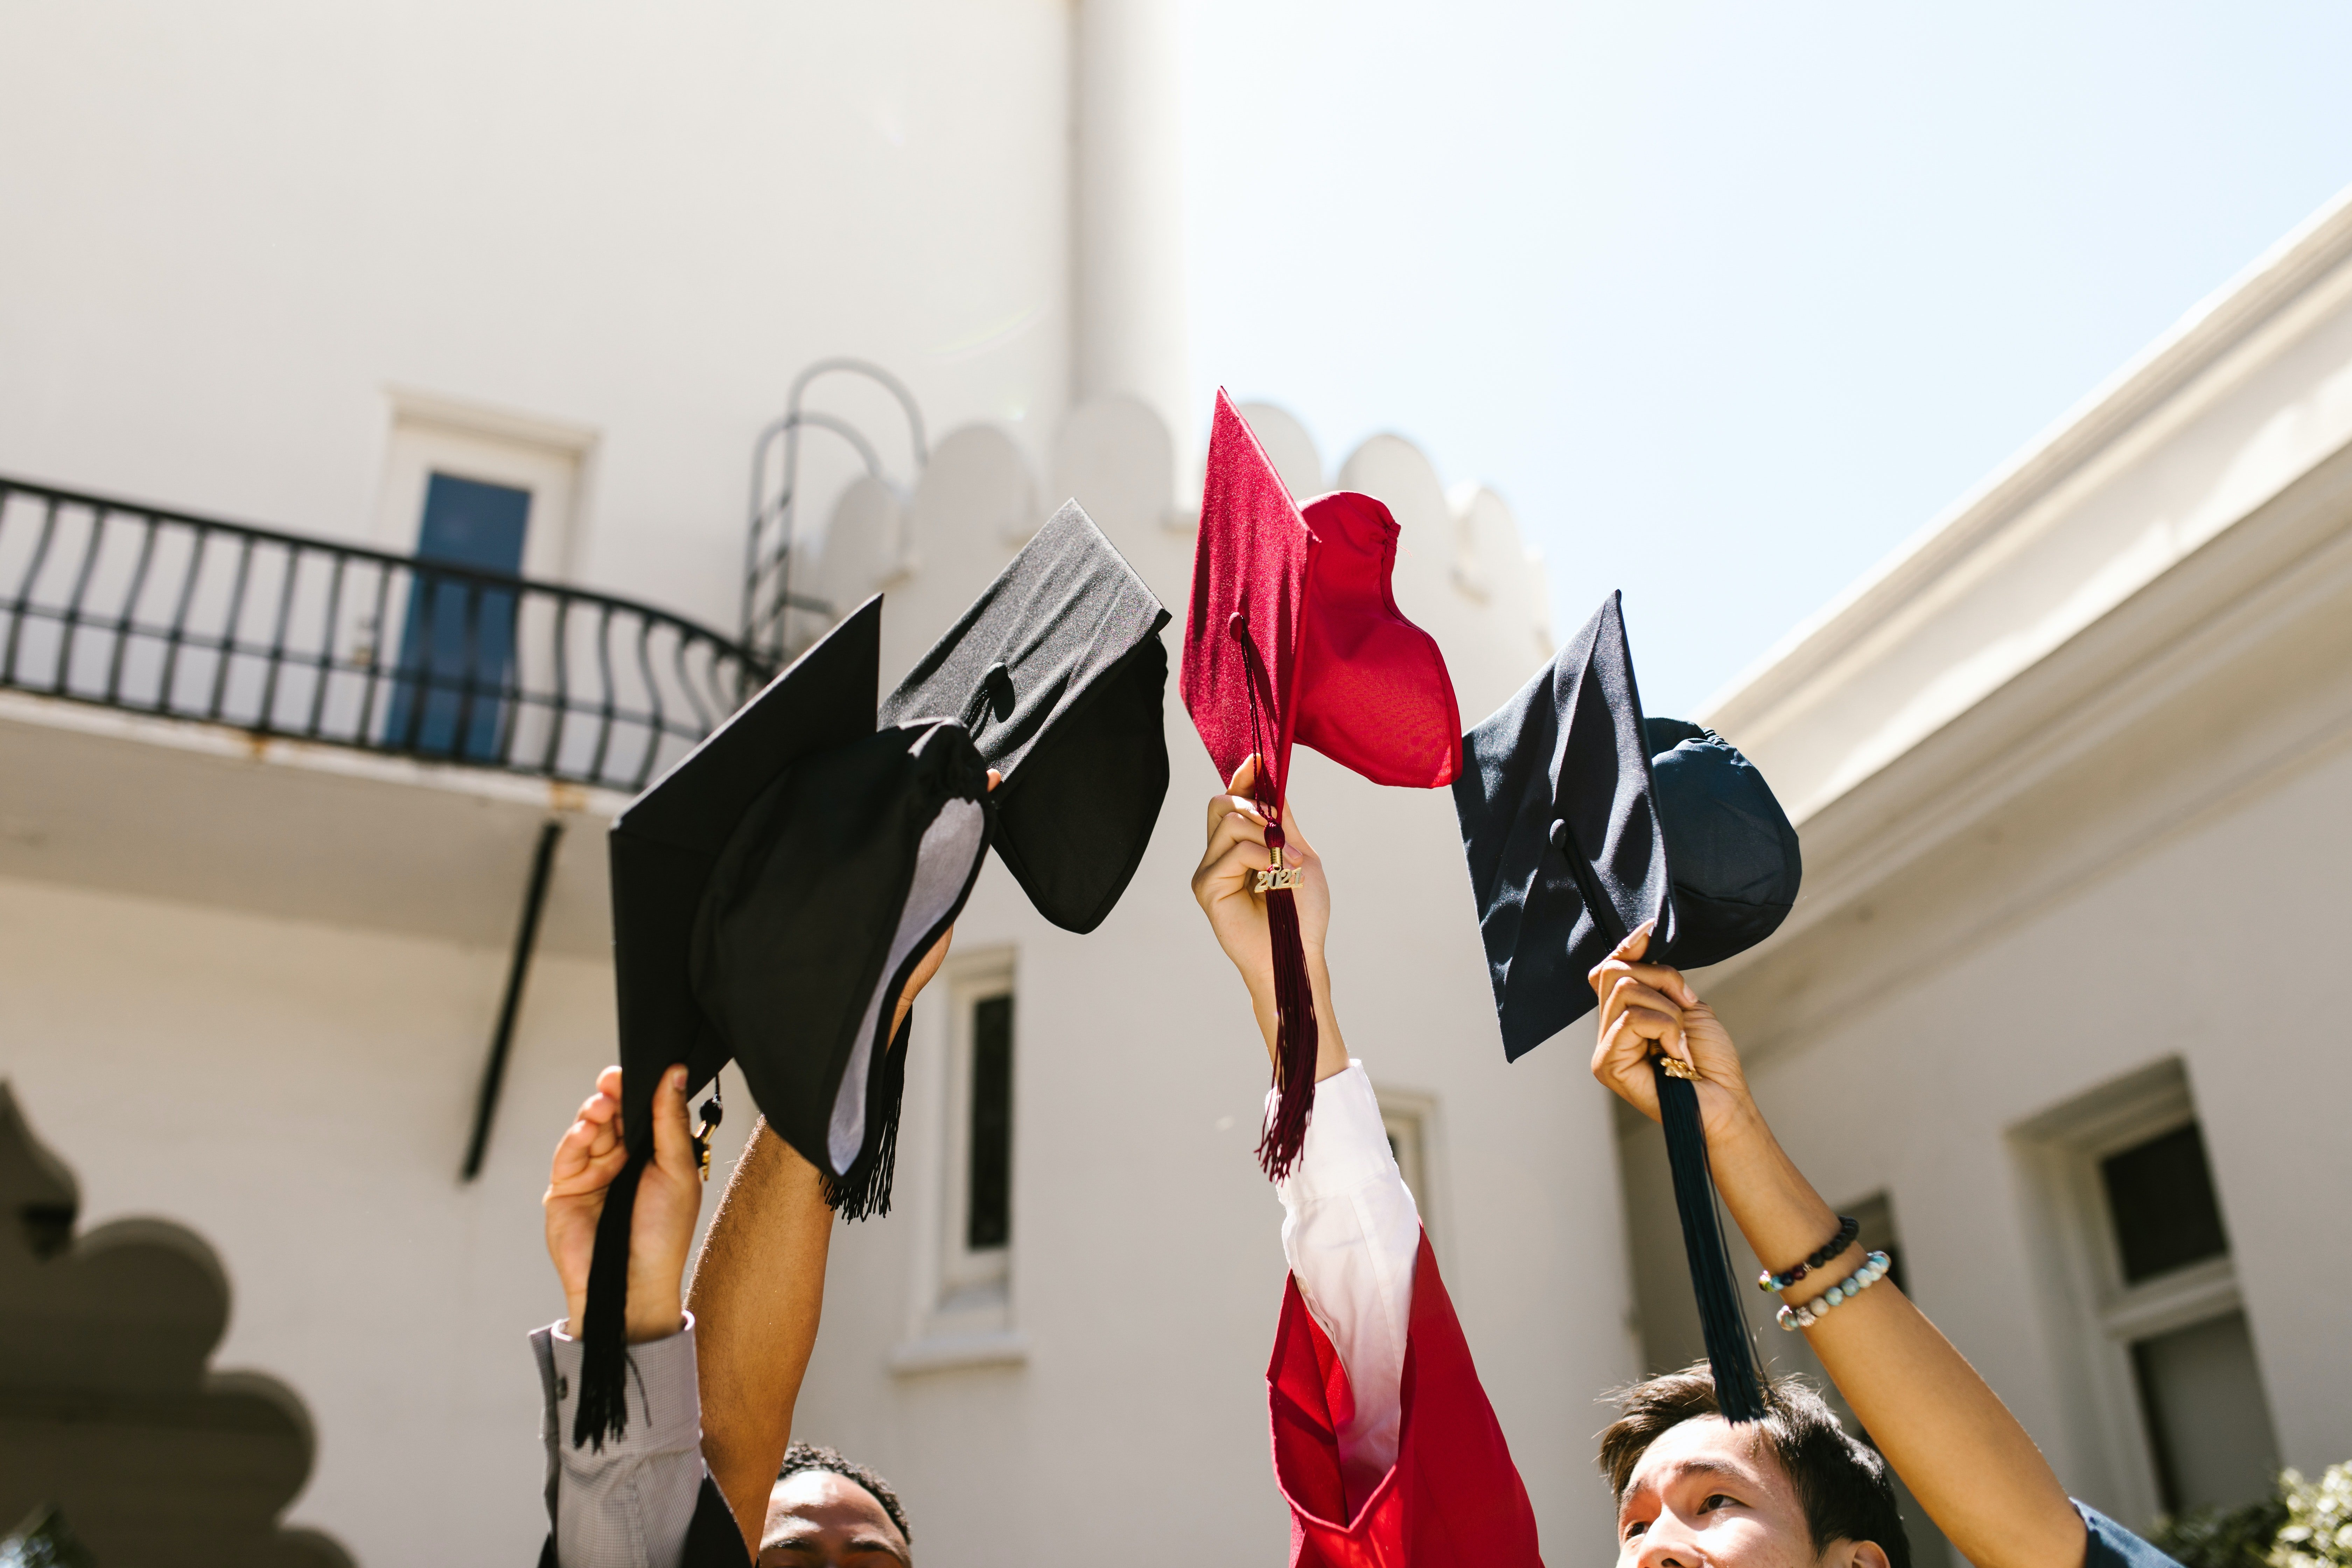 Graduating students holding up their caps. | Photo: Pexels